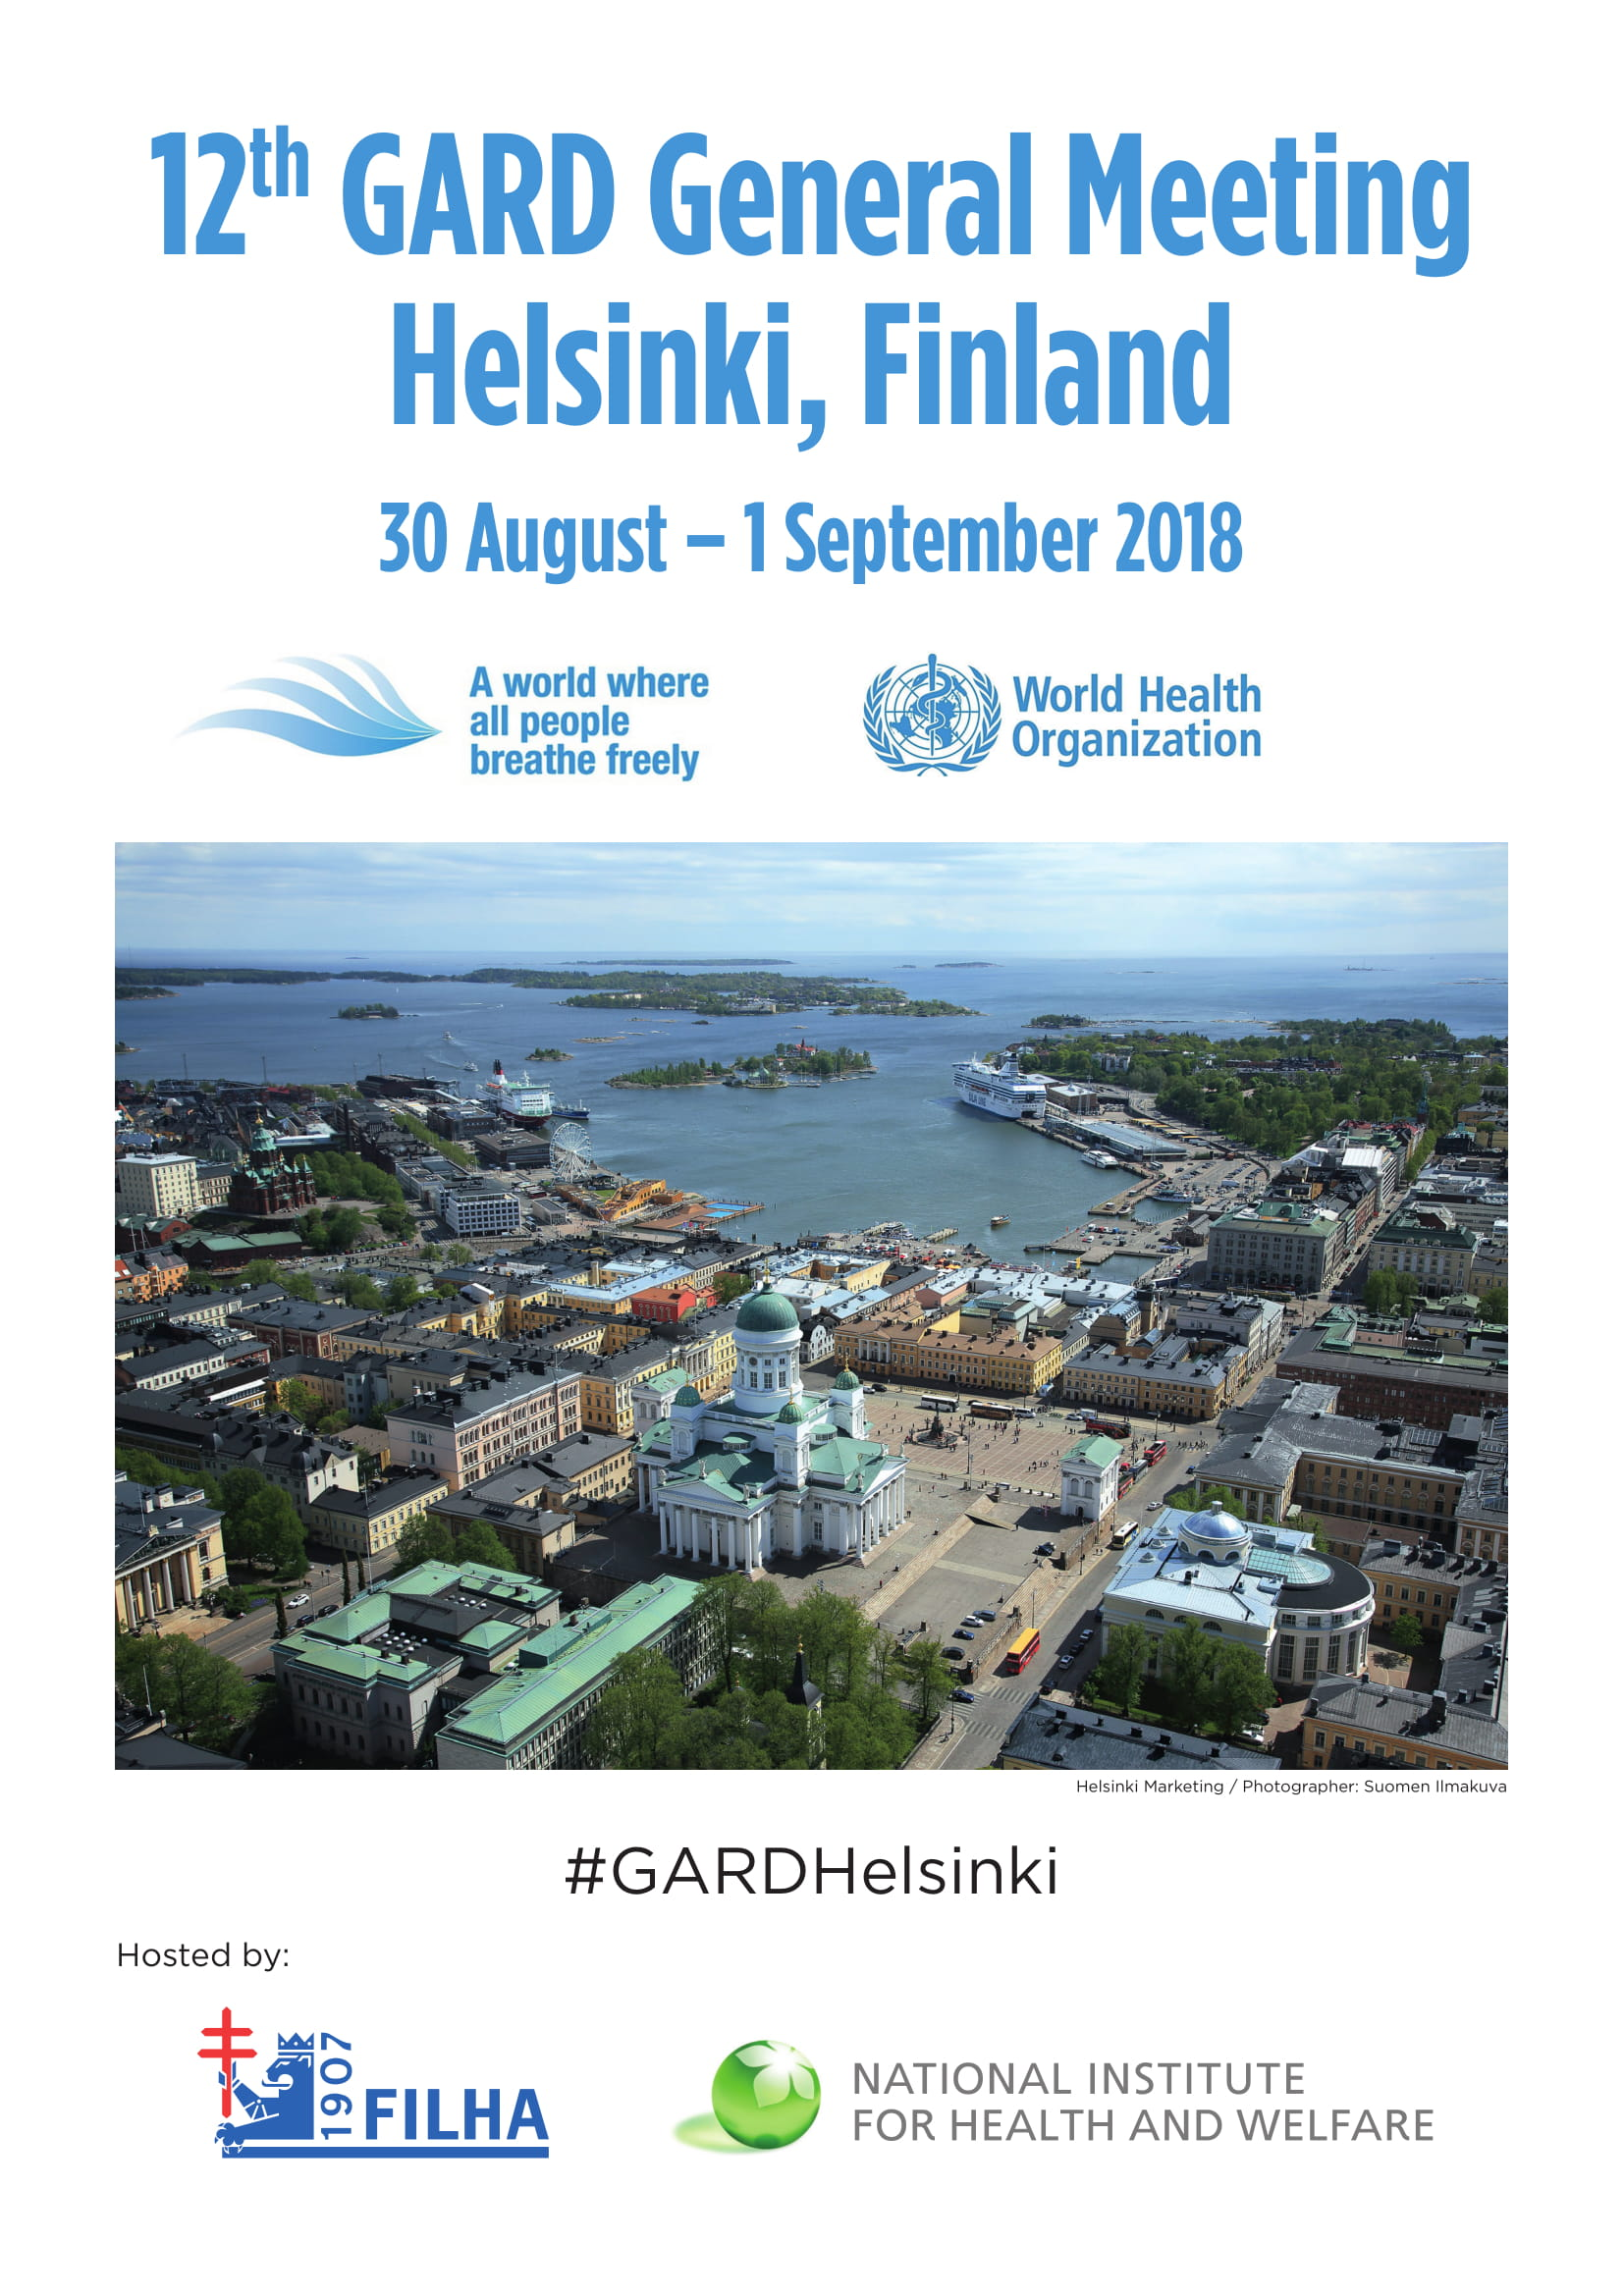 12th GARD General Meeting – International conference discusses chronic lung diseases in Helsinki